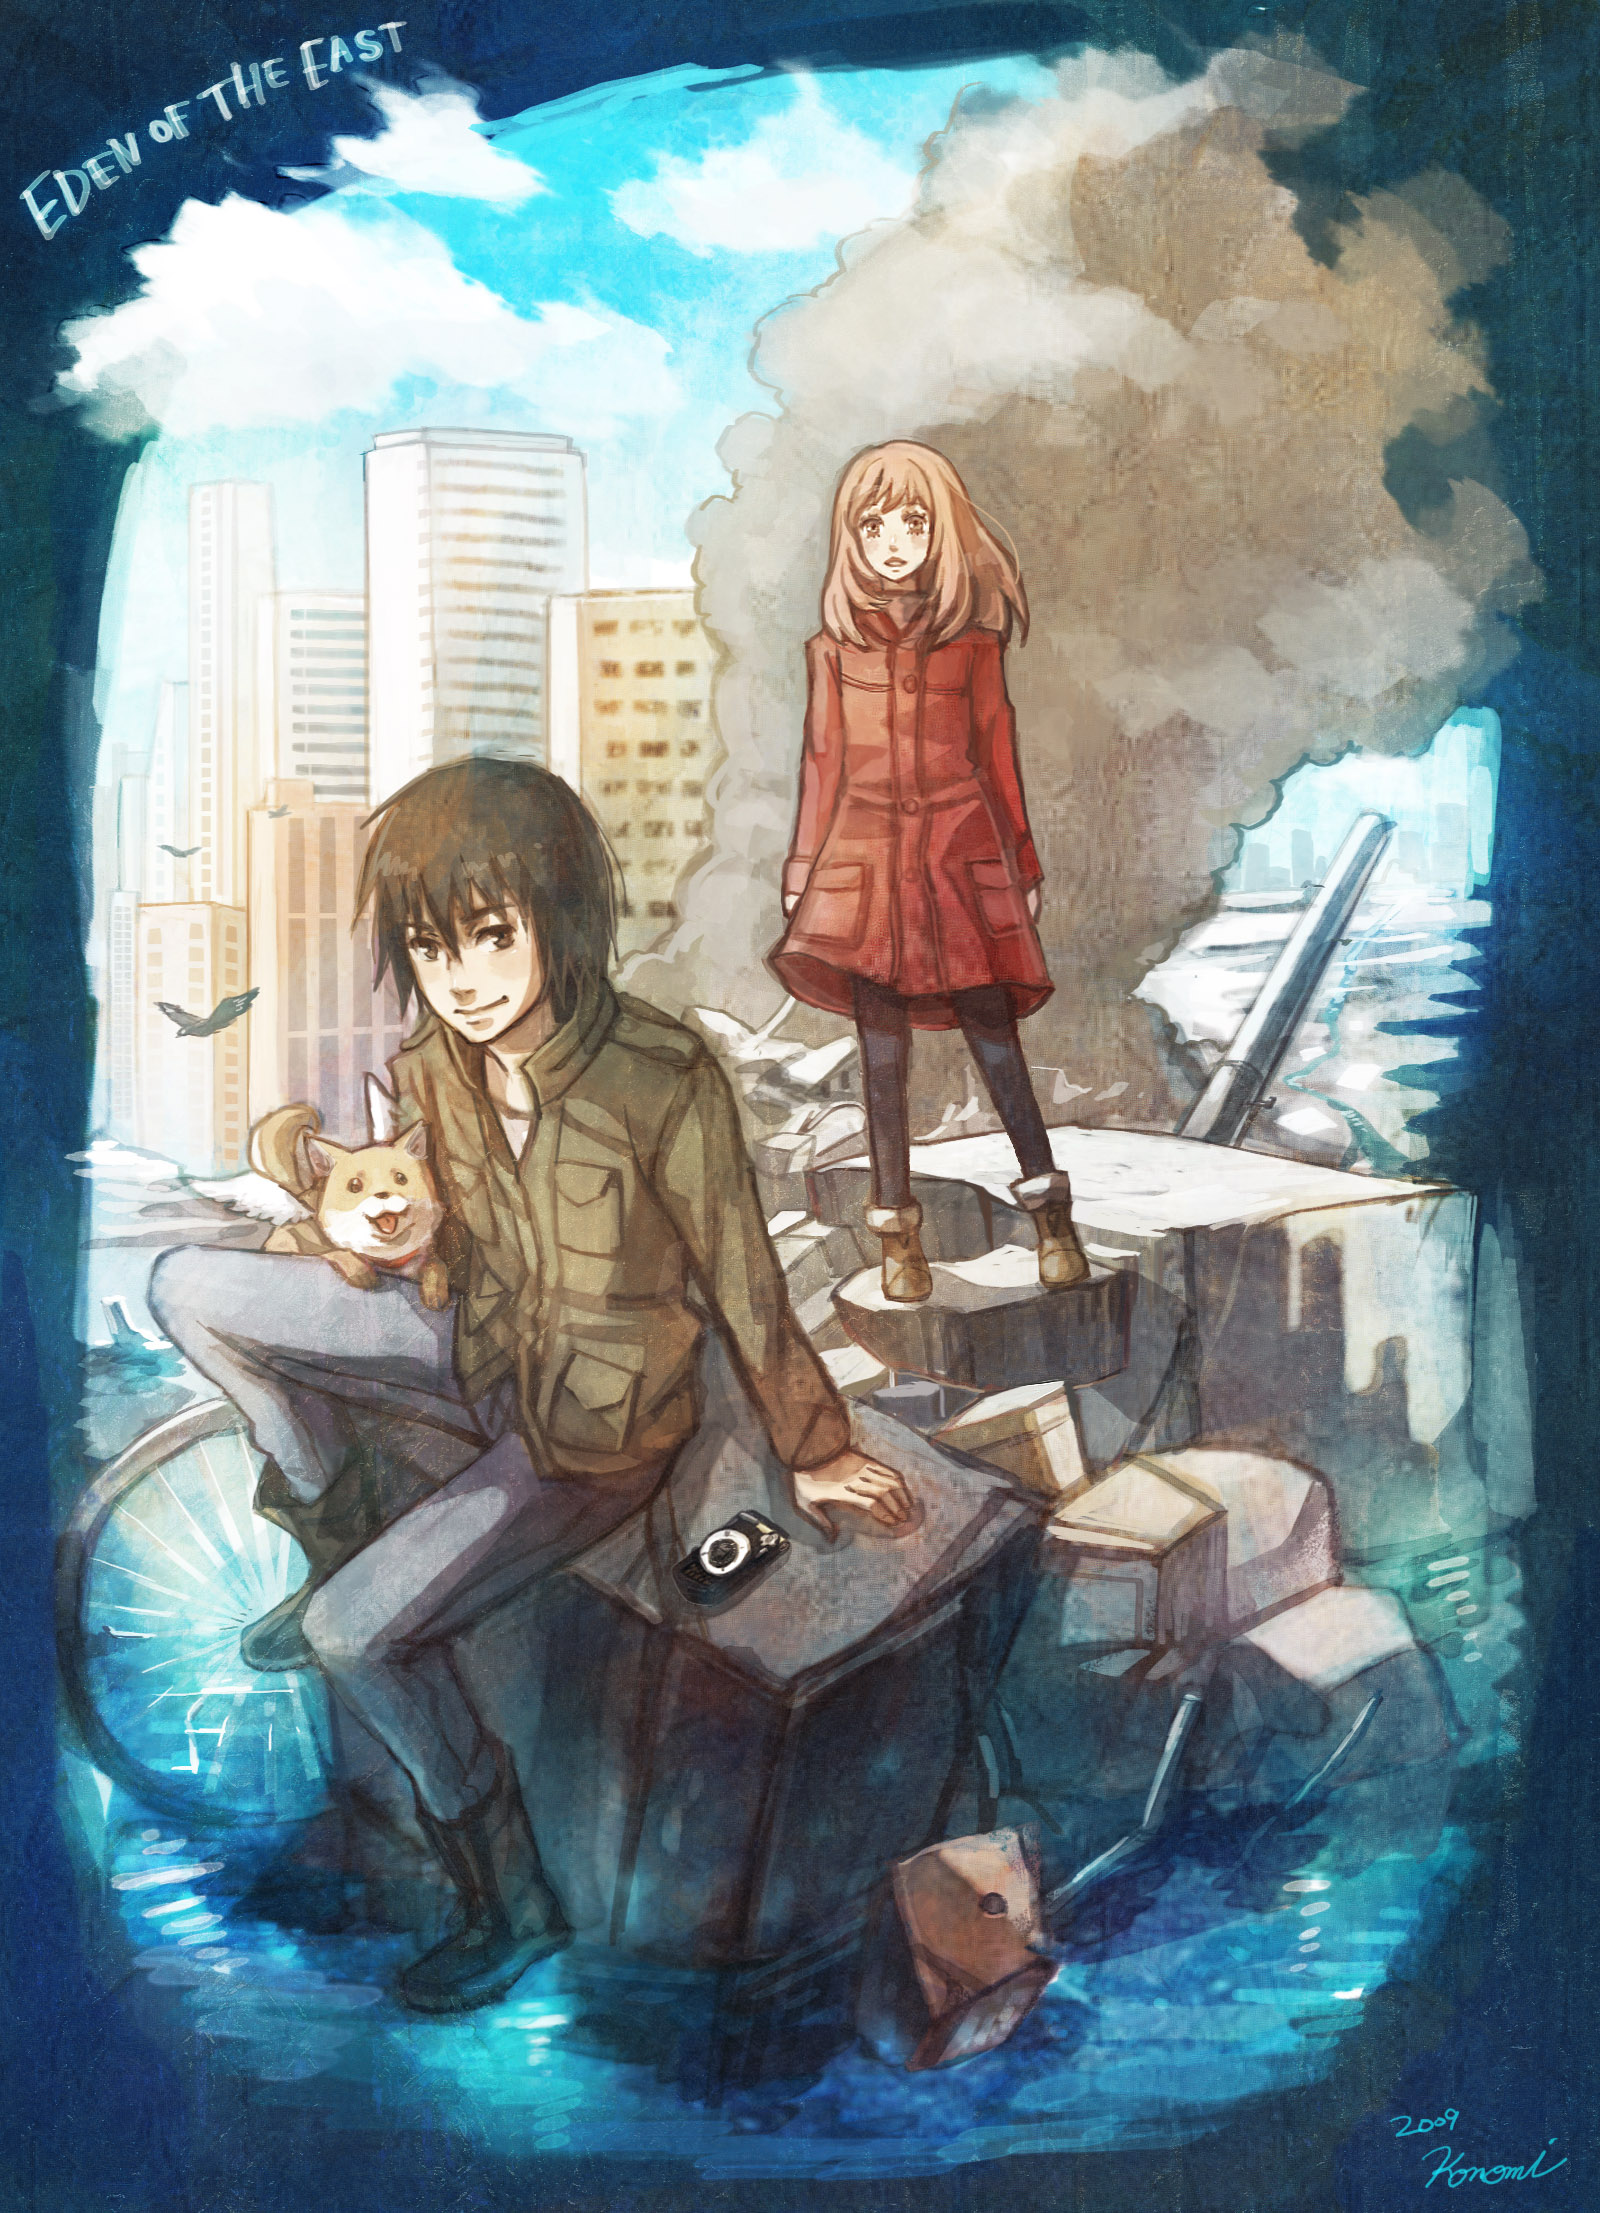 Eden of the East movie